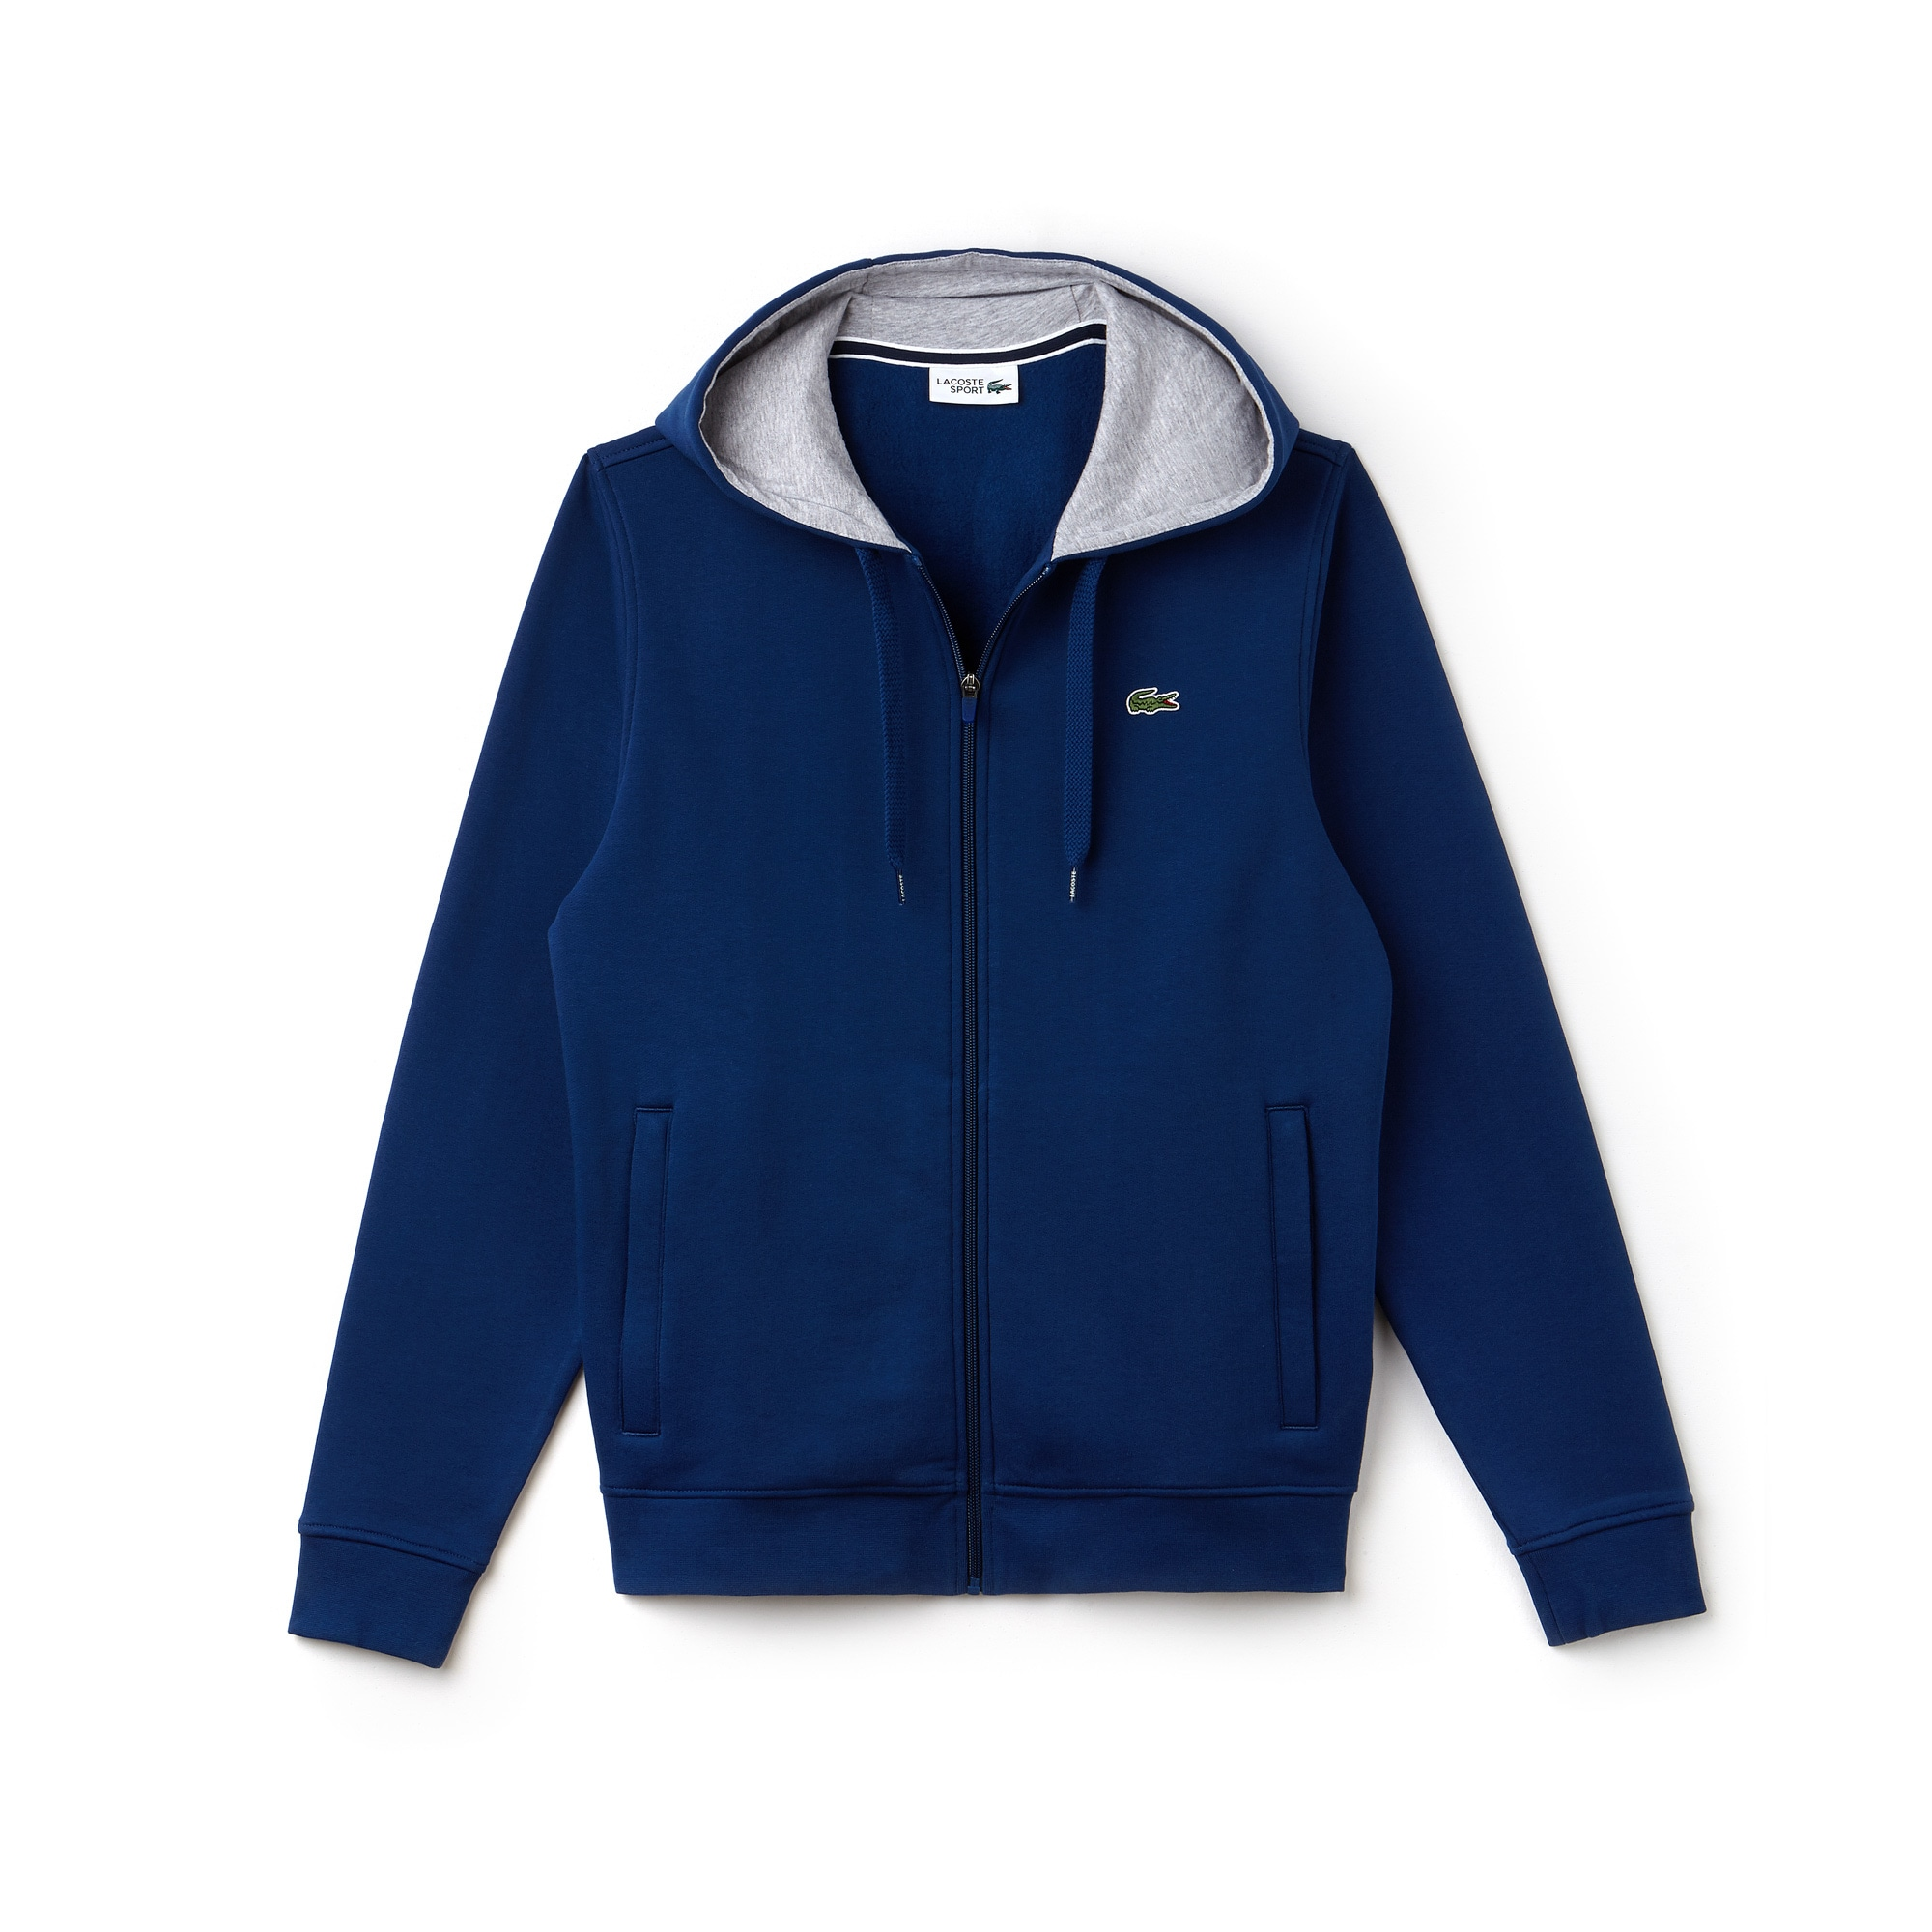 Men's Lacoste SPORT Tennis hooded zippered sweatshirt in fleece